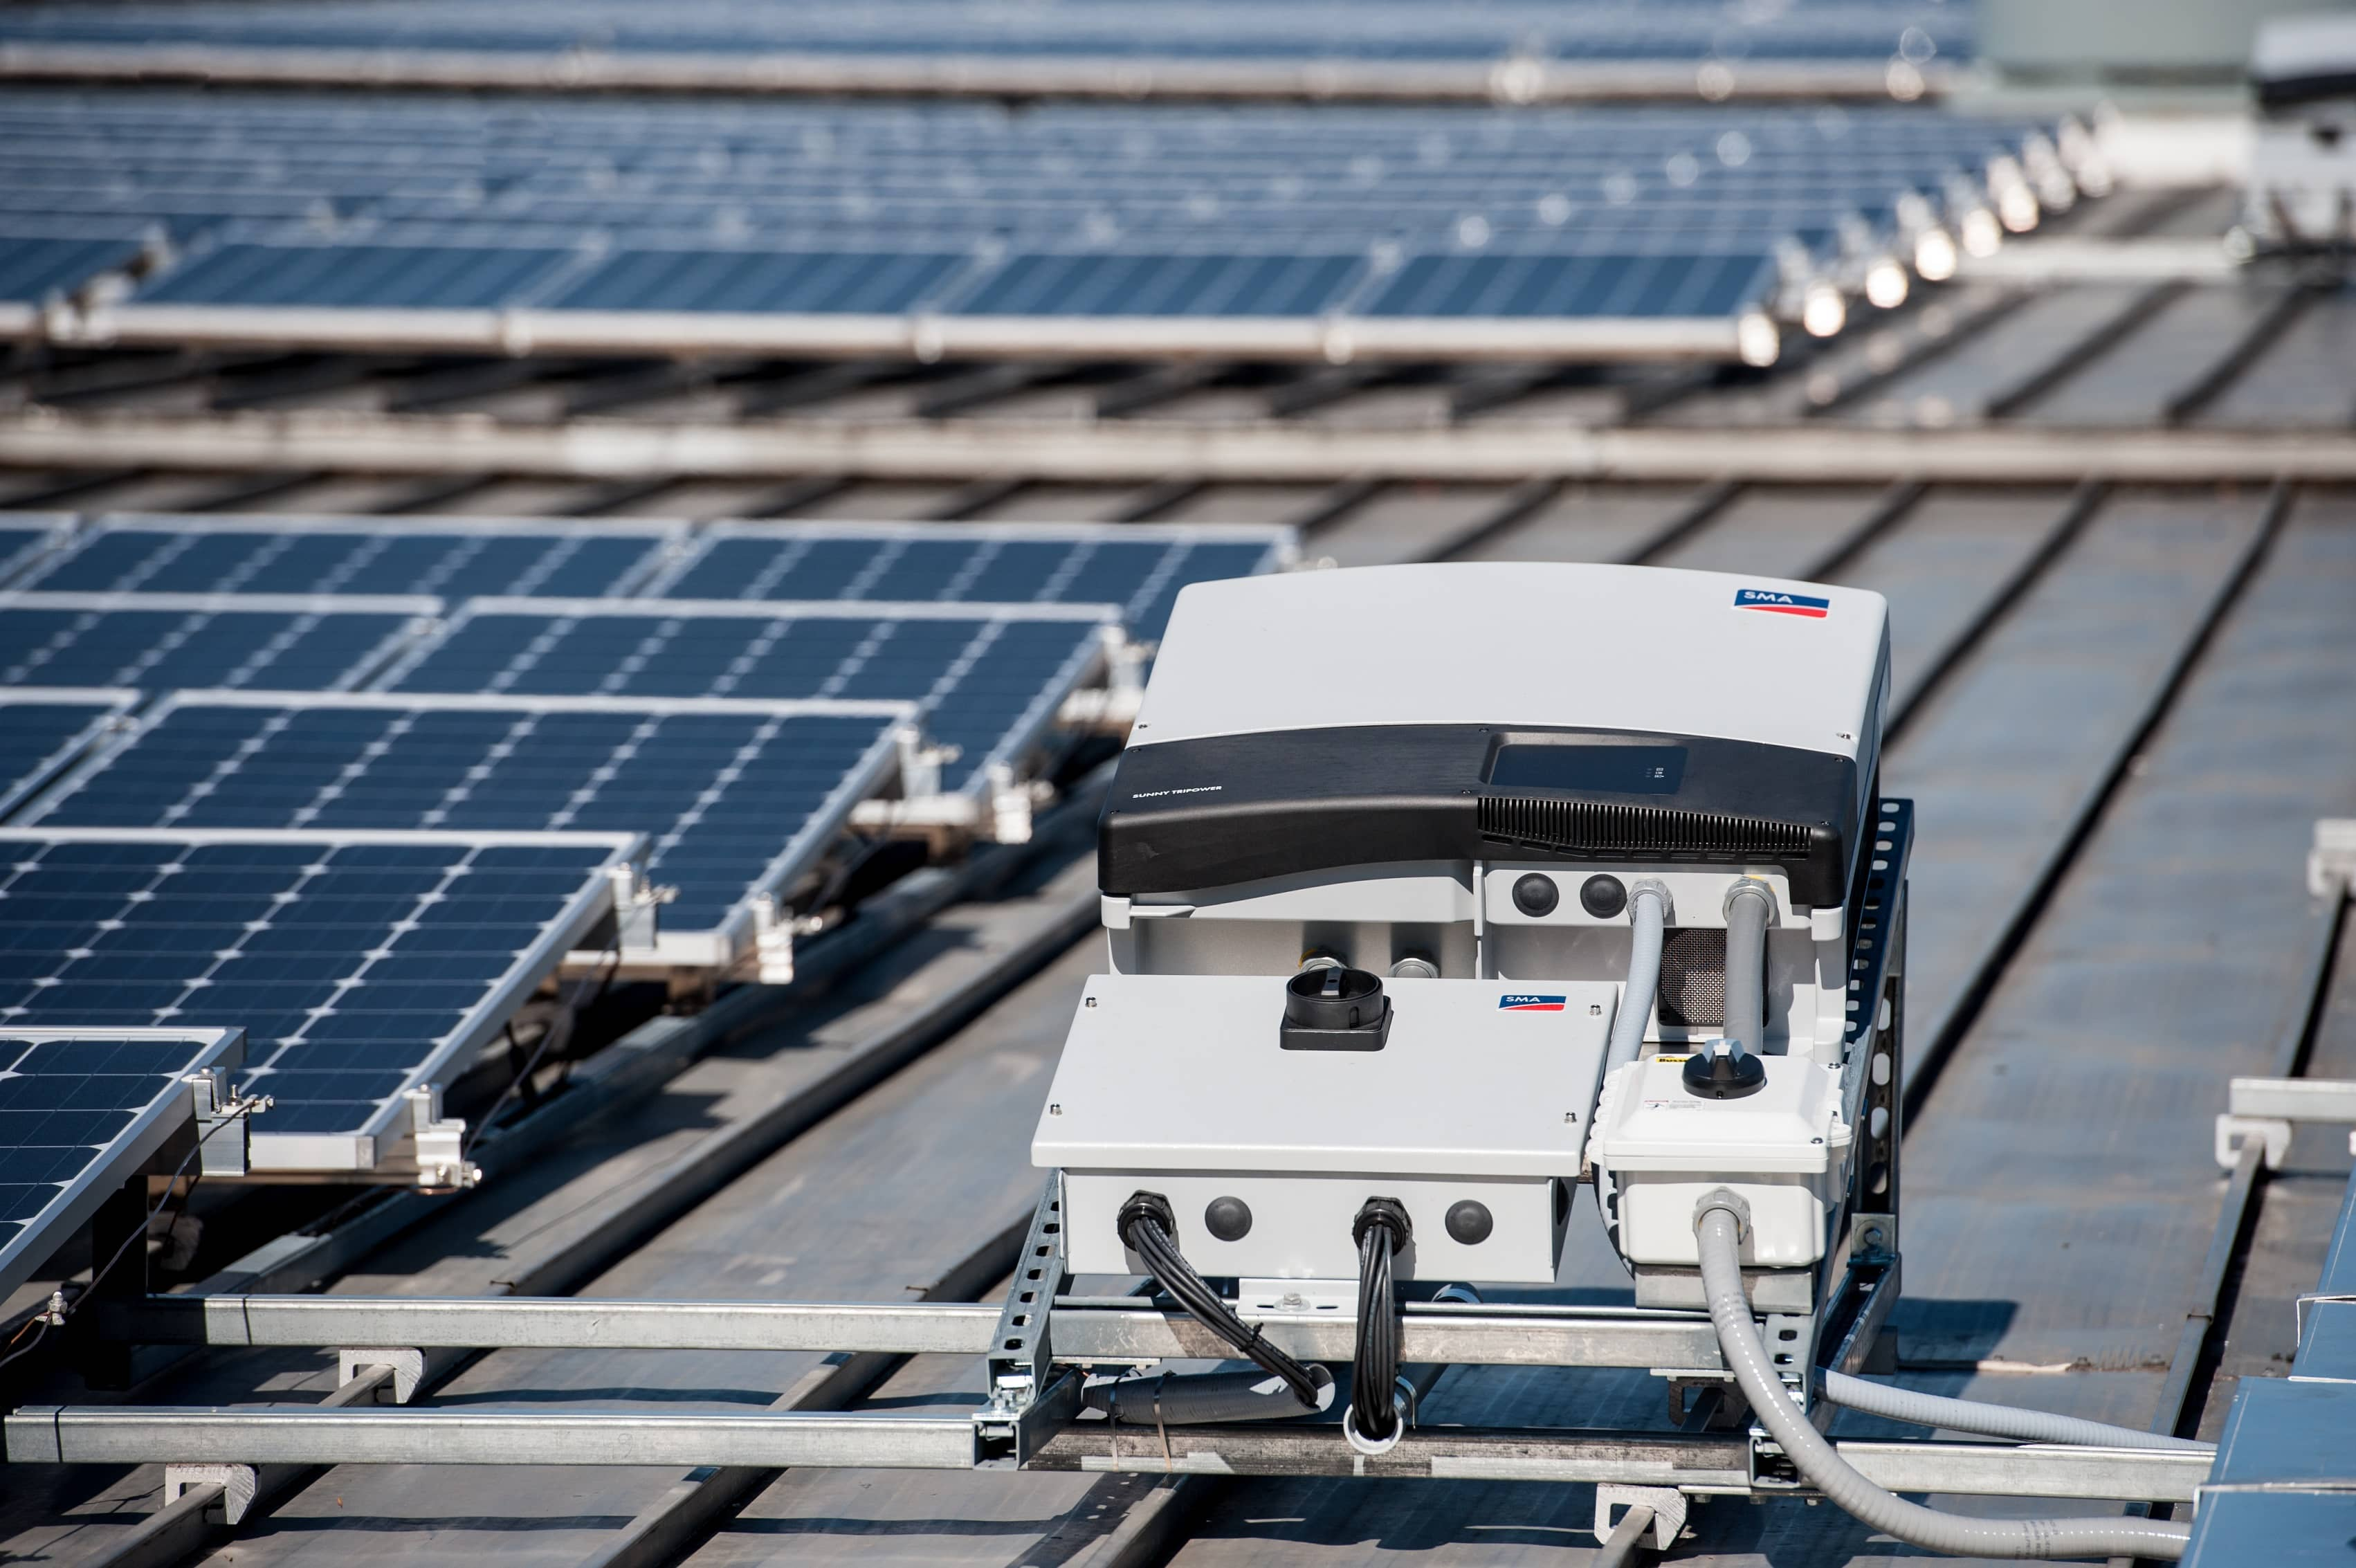 Shaw-Industries SMA Remains Top PV Inverter Supplier In 2015, But Competition Increases